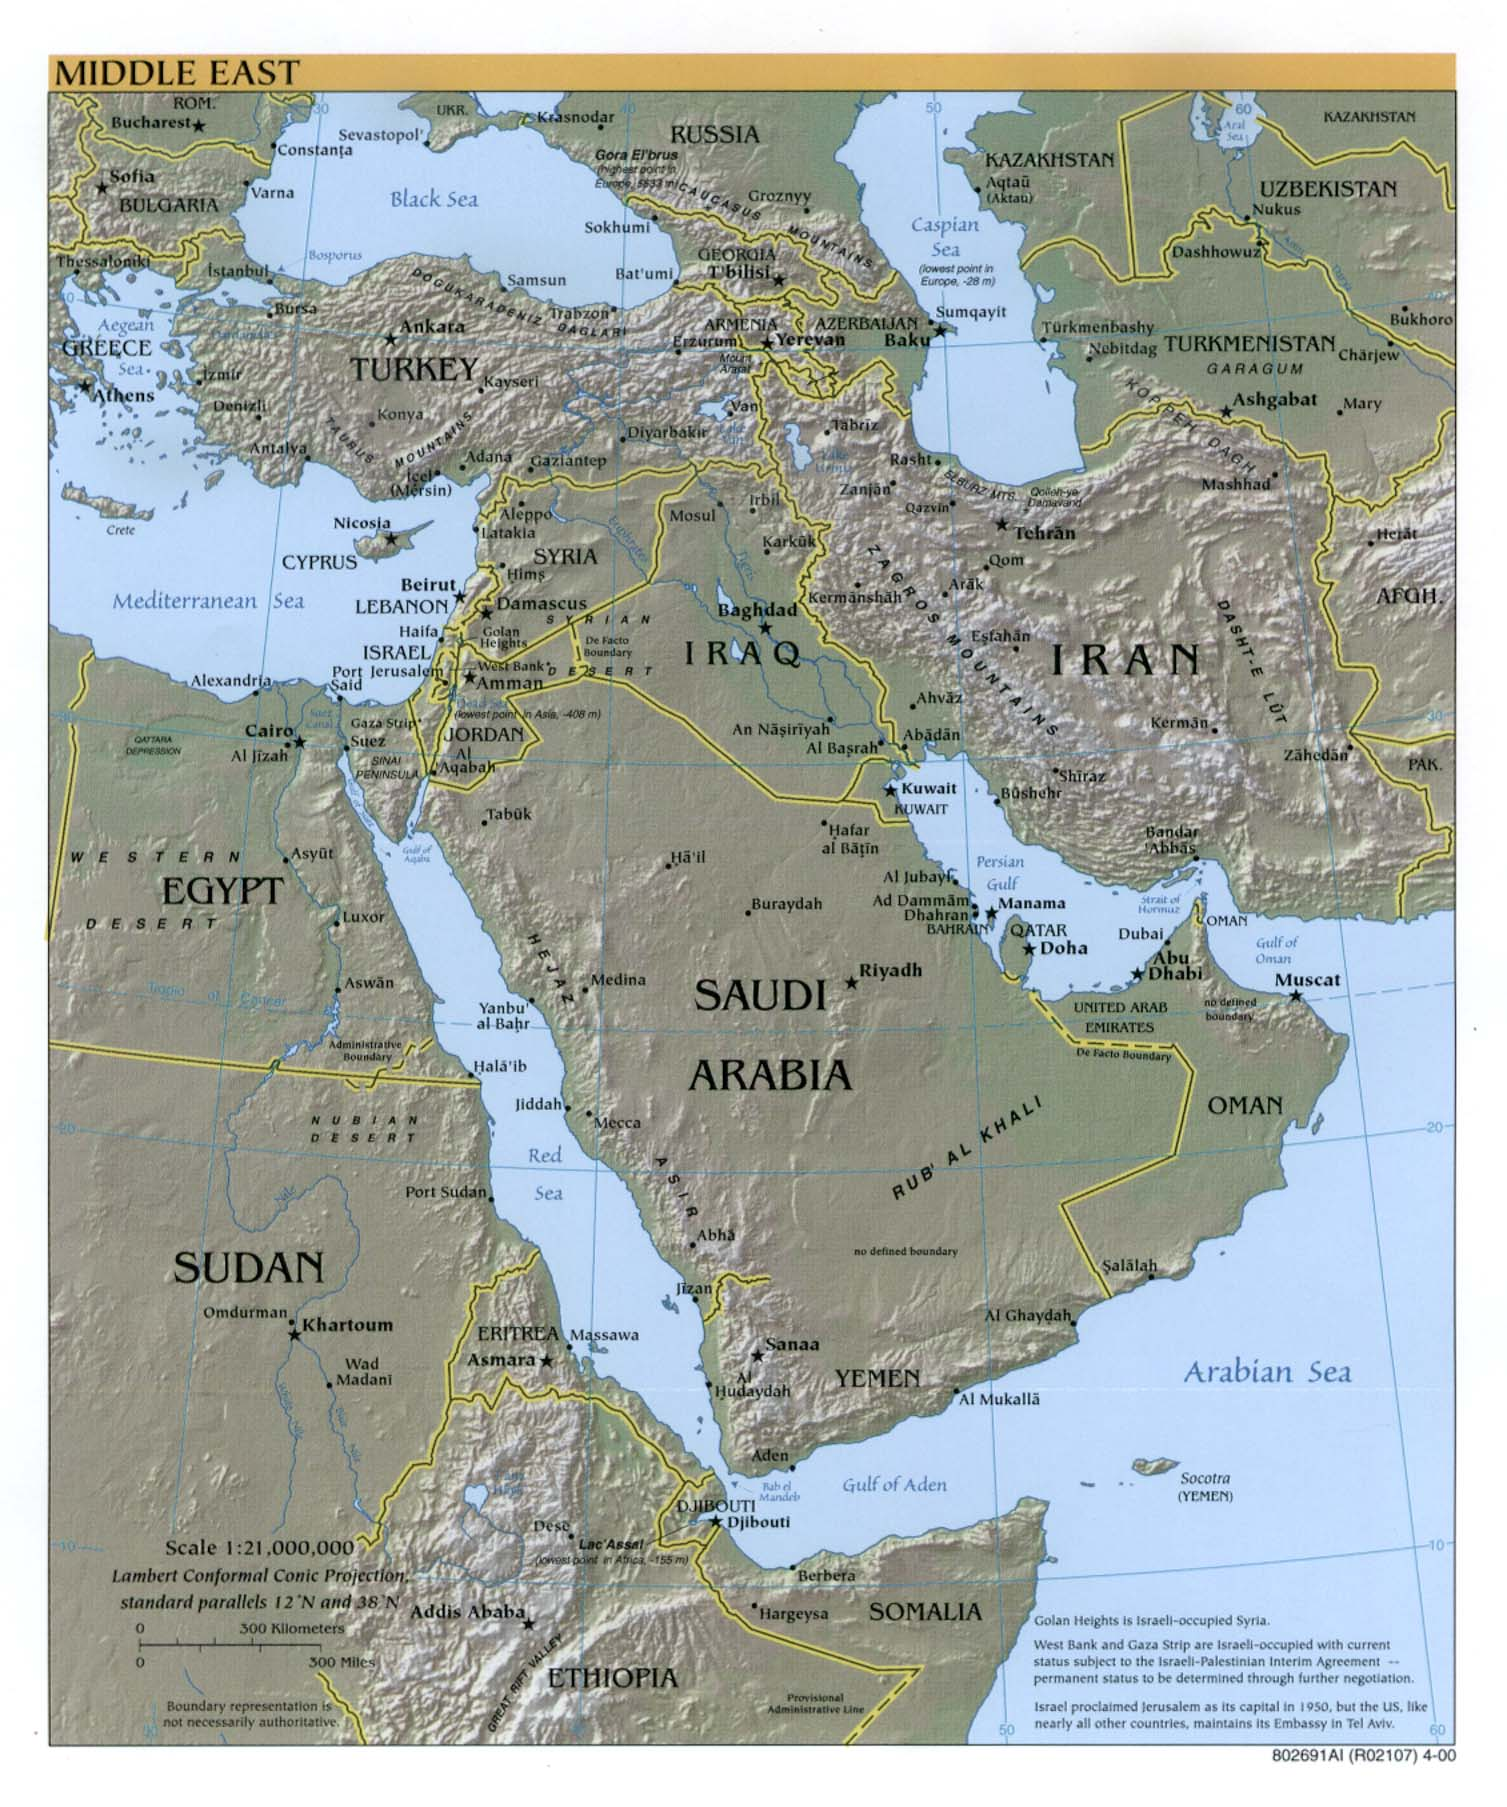 Middle East Ref Map